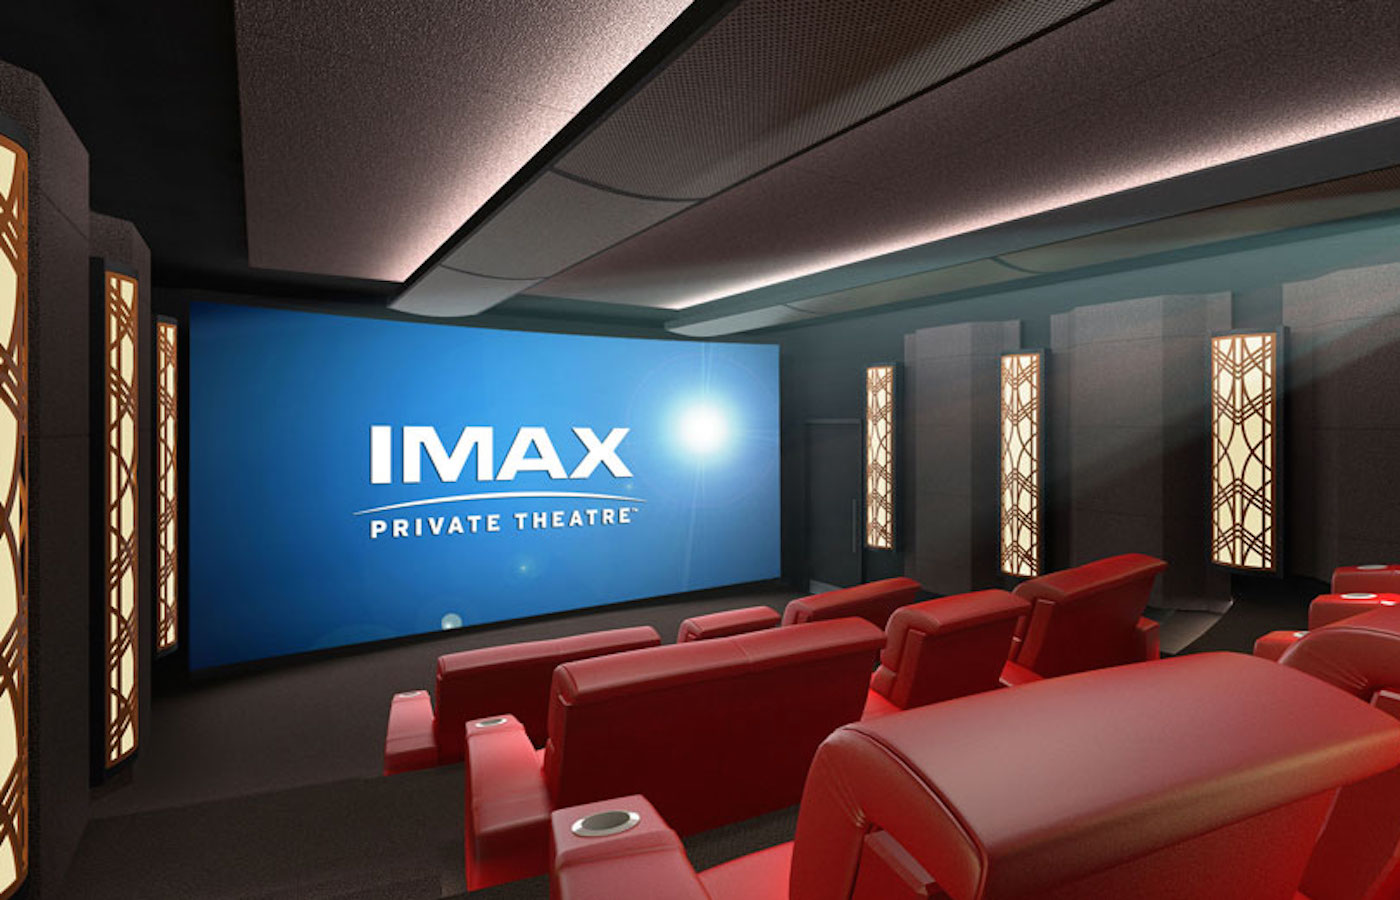 imax-private-theatre.jpg